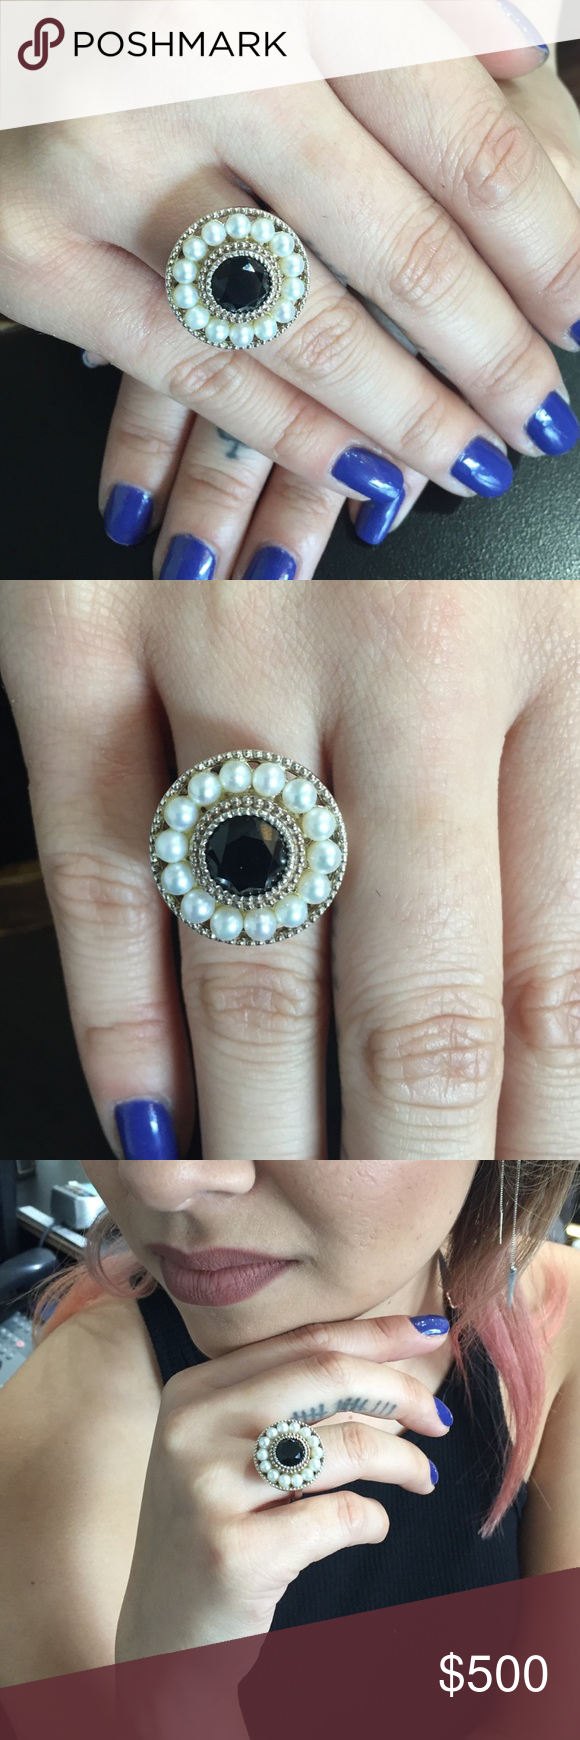 84c23ac96ca7a Tiffany's Onyx/Pearl ring (Ziegfeld Collection) Sterling silver with ...